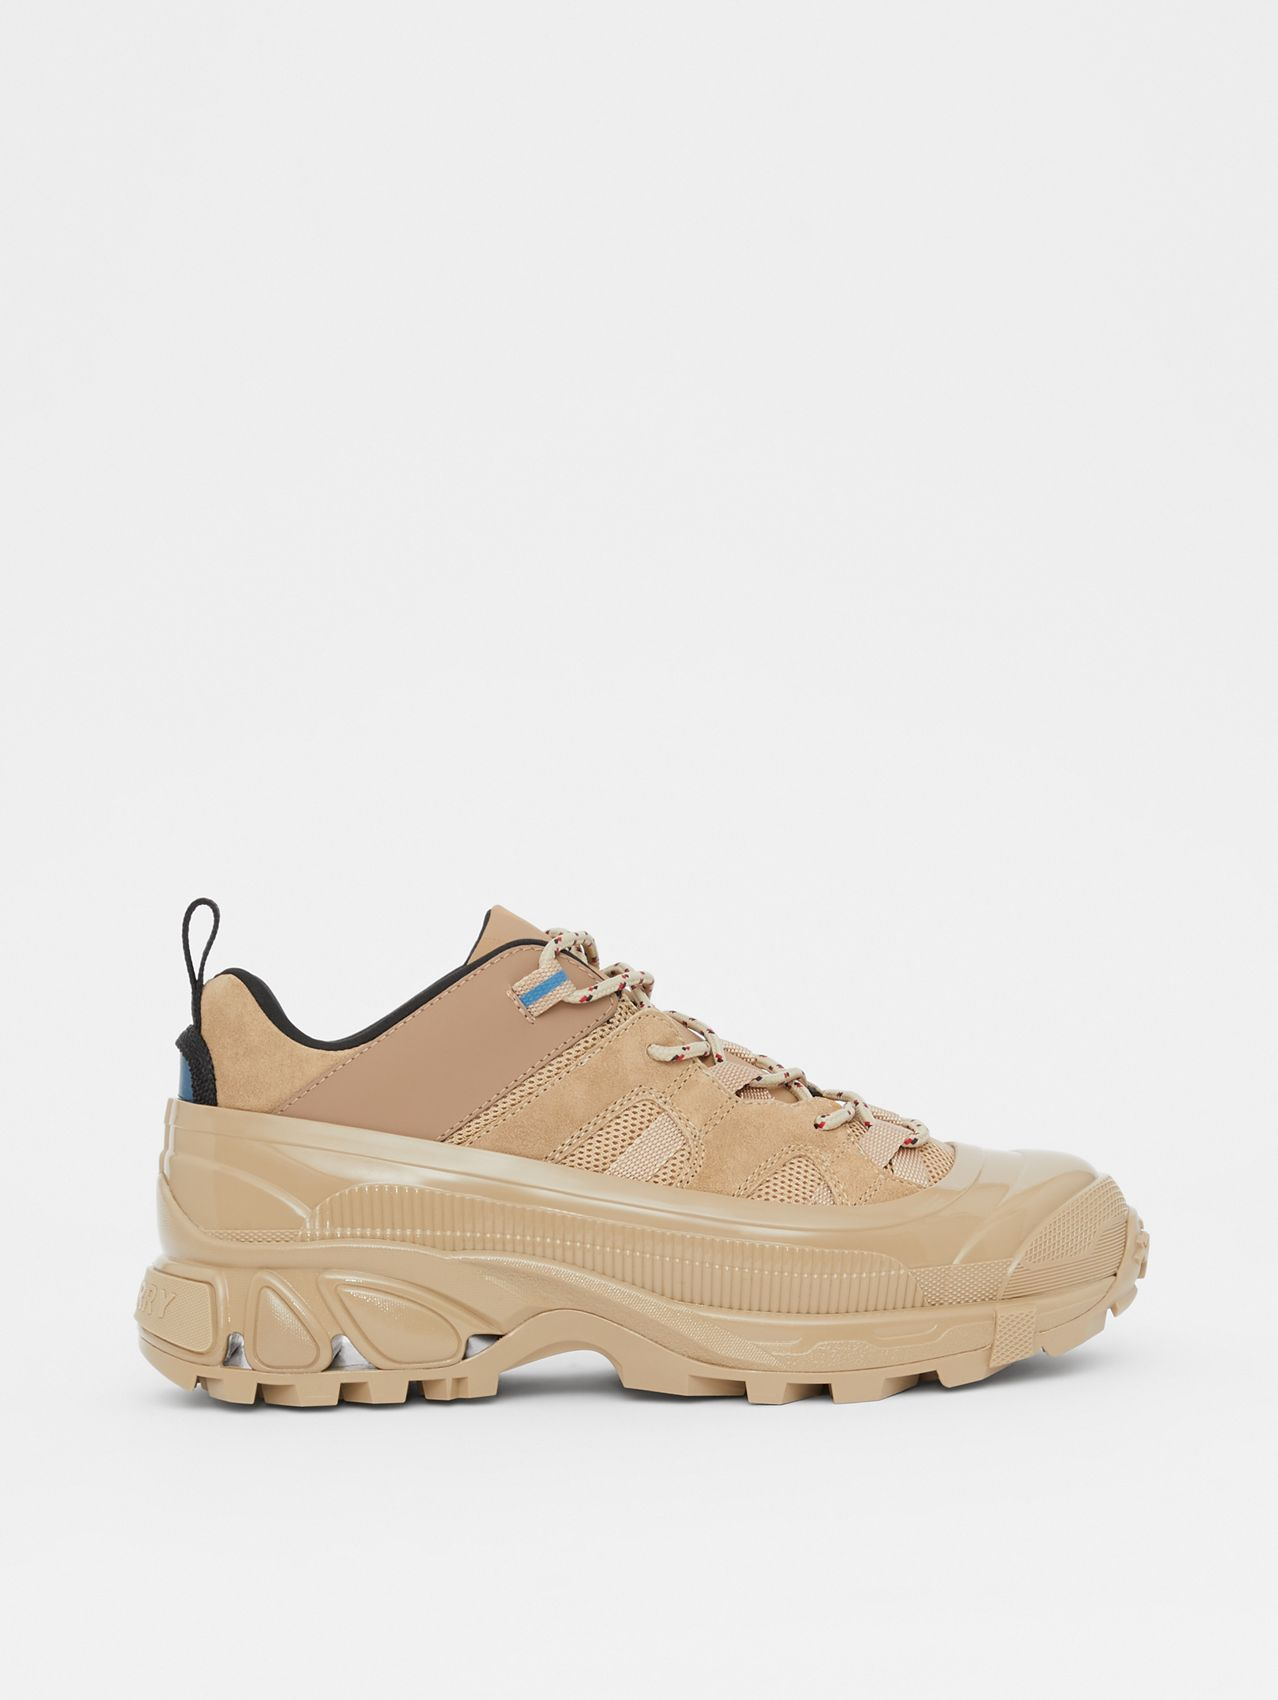 Suede, Mesh and Leather Arthur Sneakers in Beige